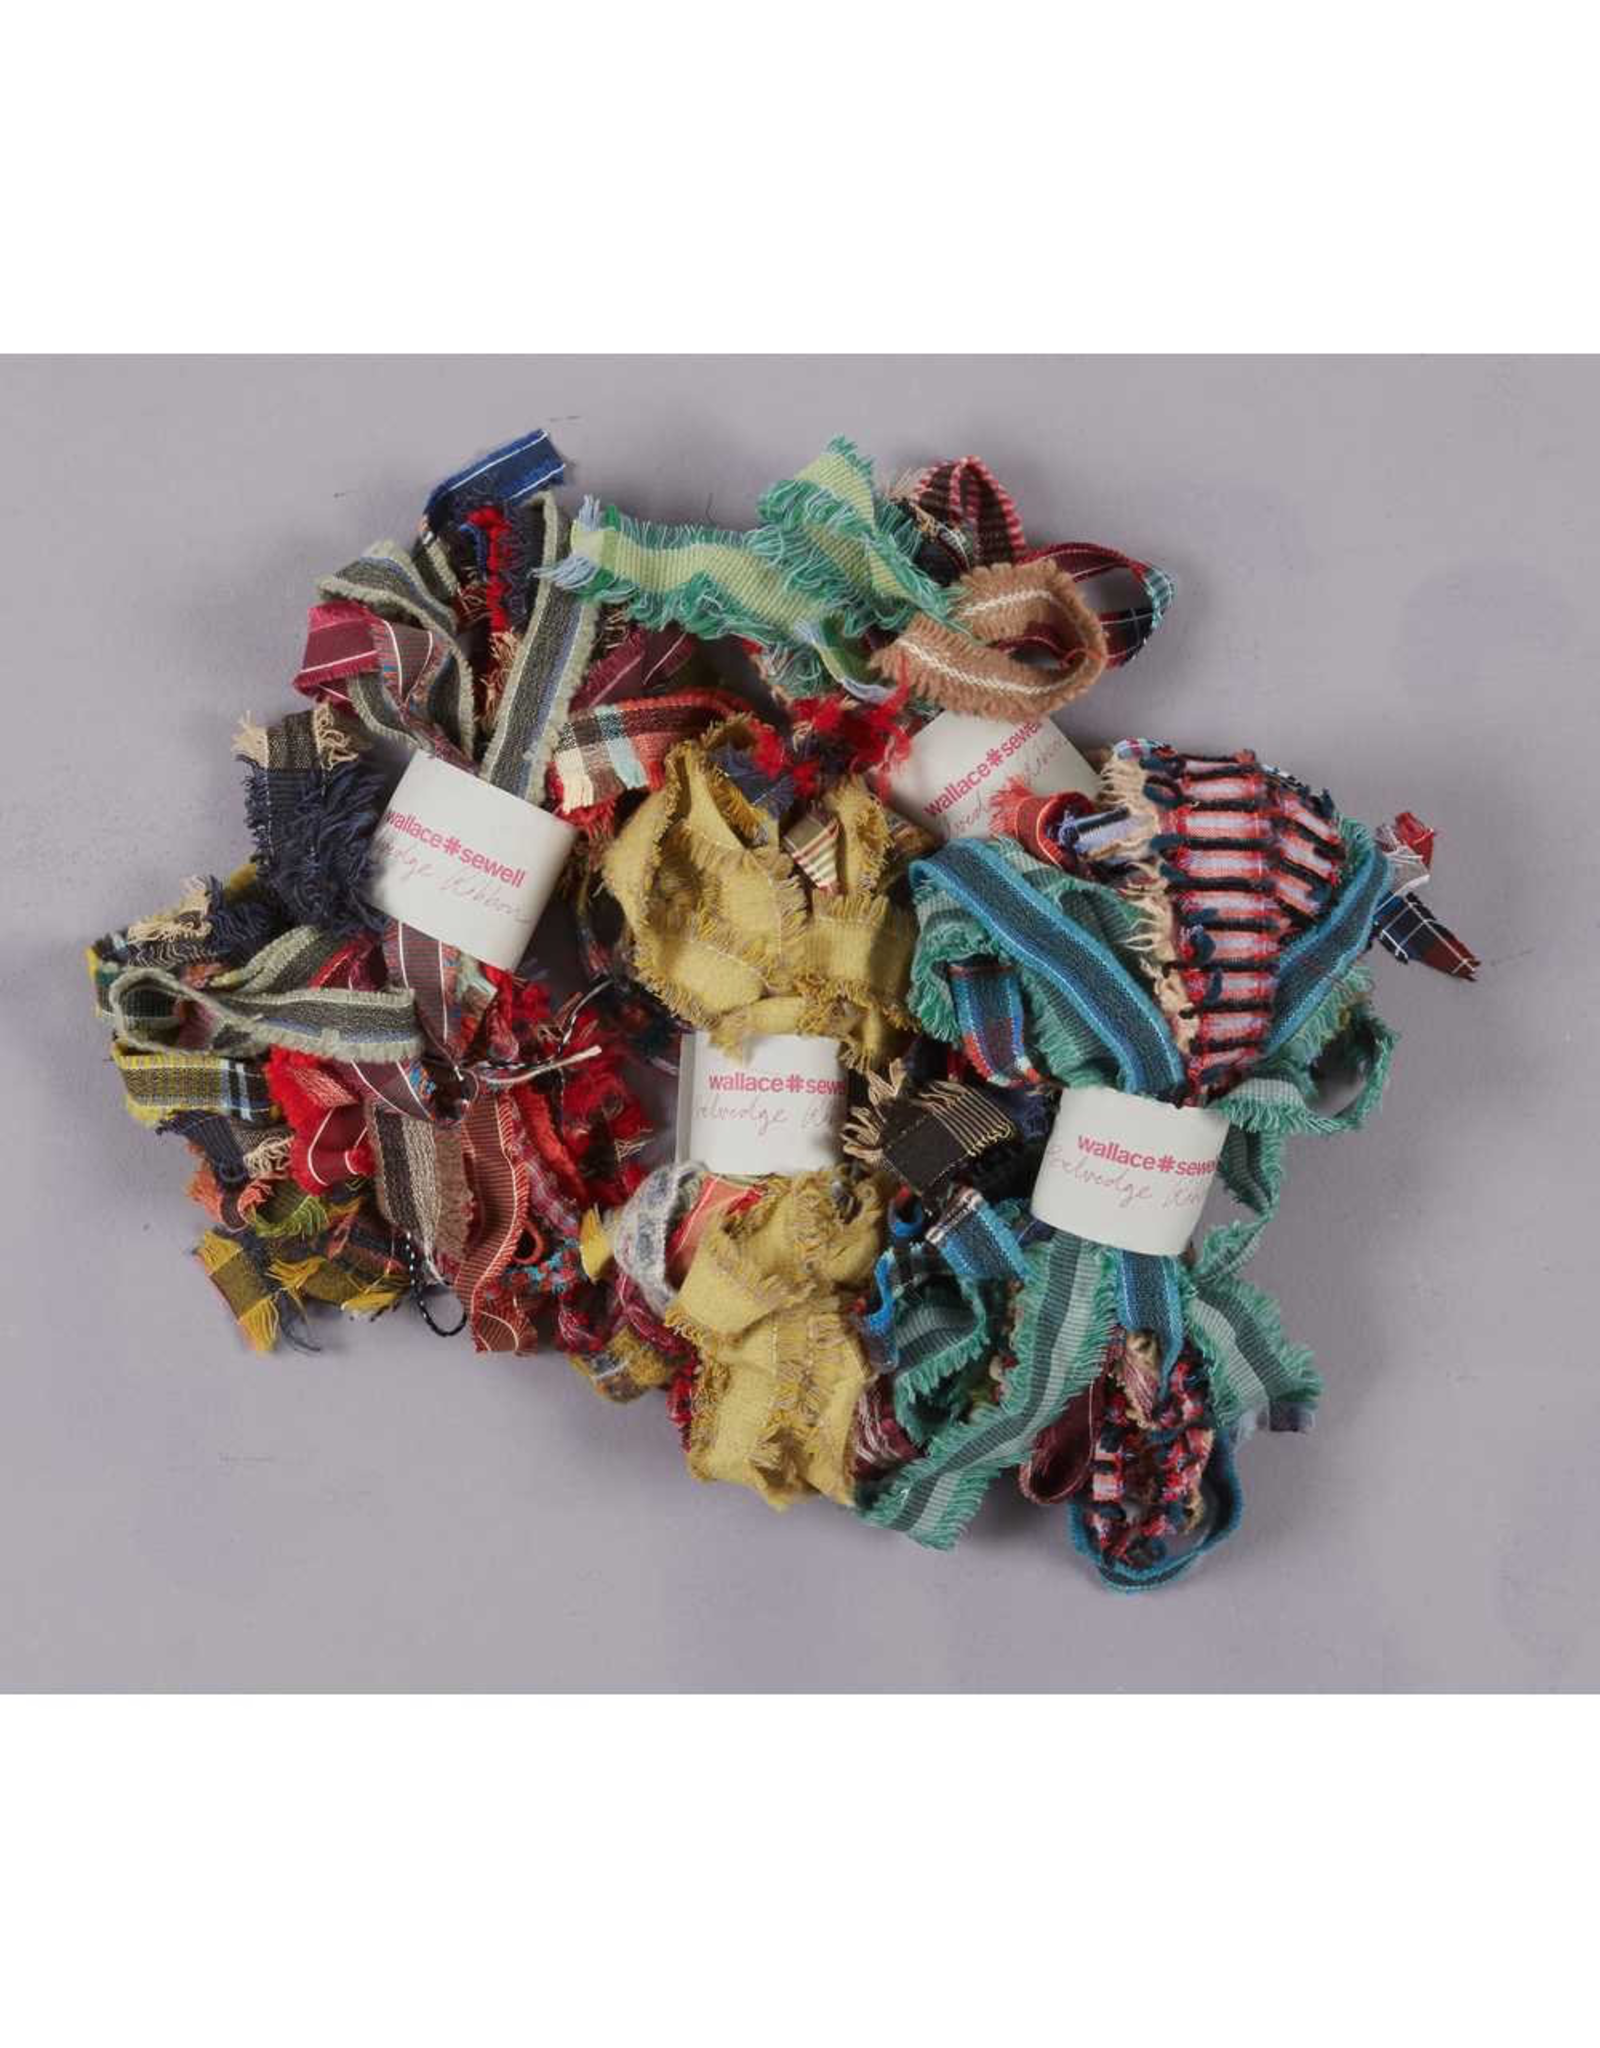 Wallace Sewell Wallace & Sewell Braid Bundle Multi Color